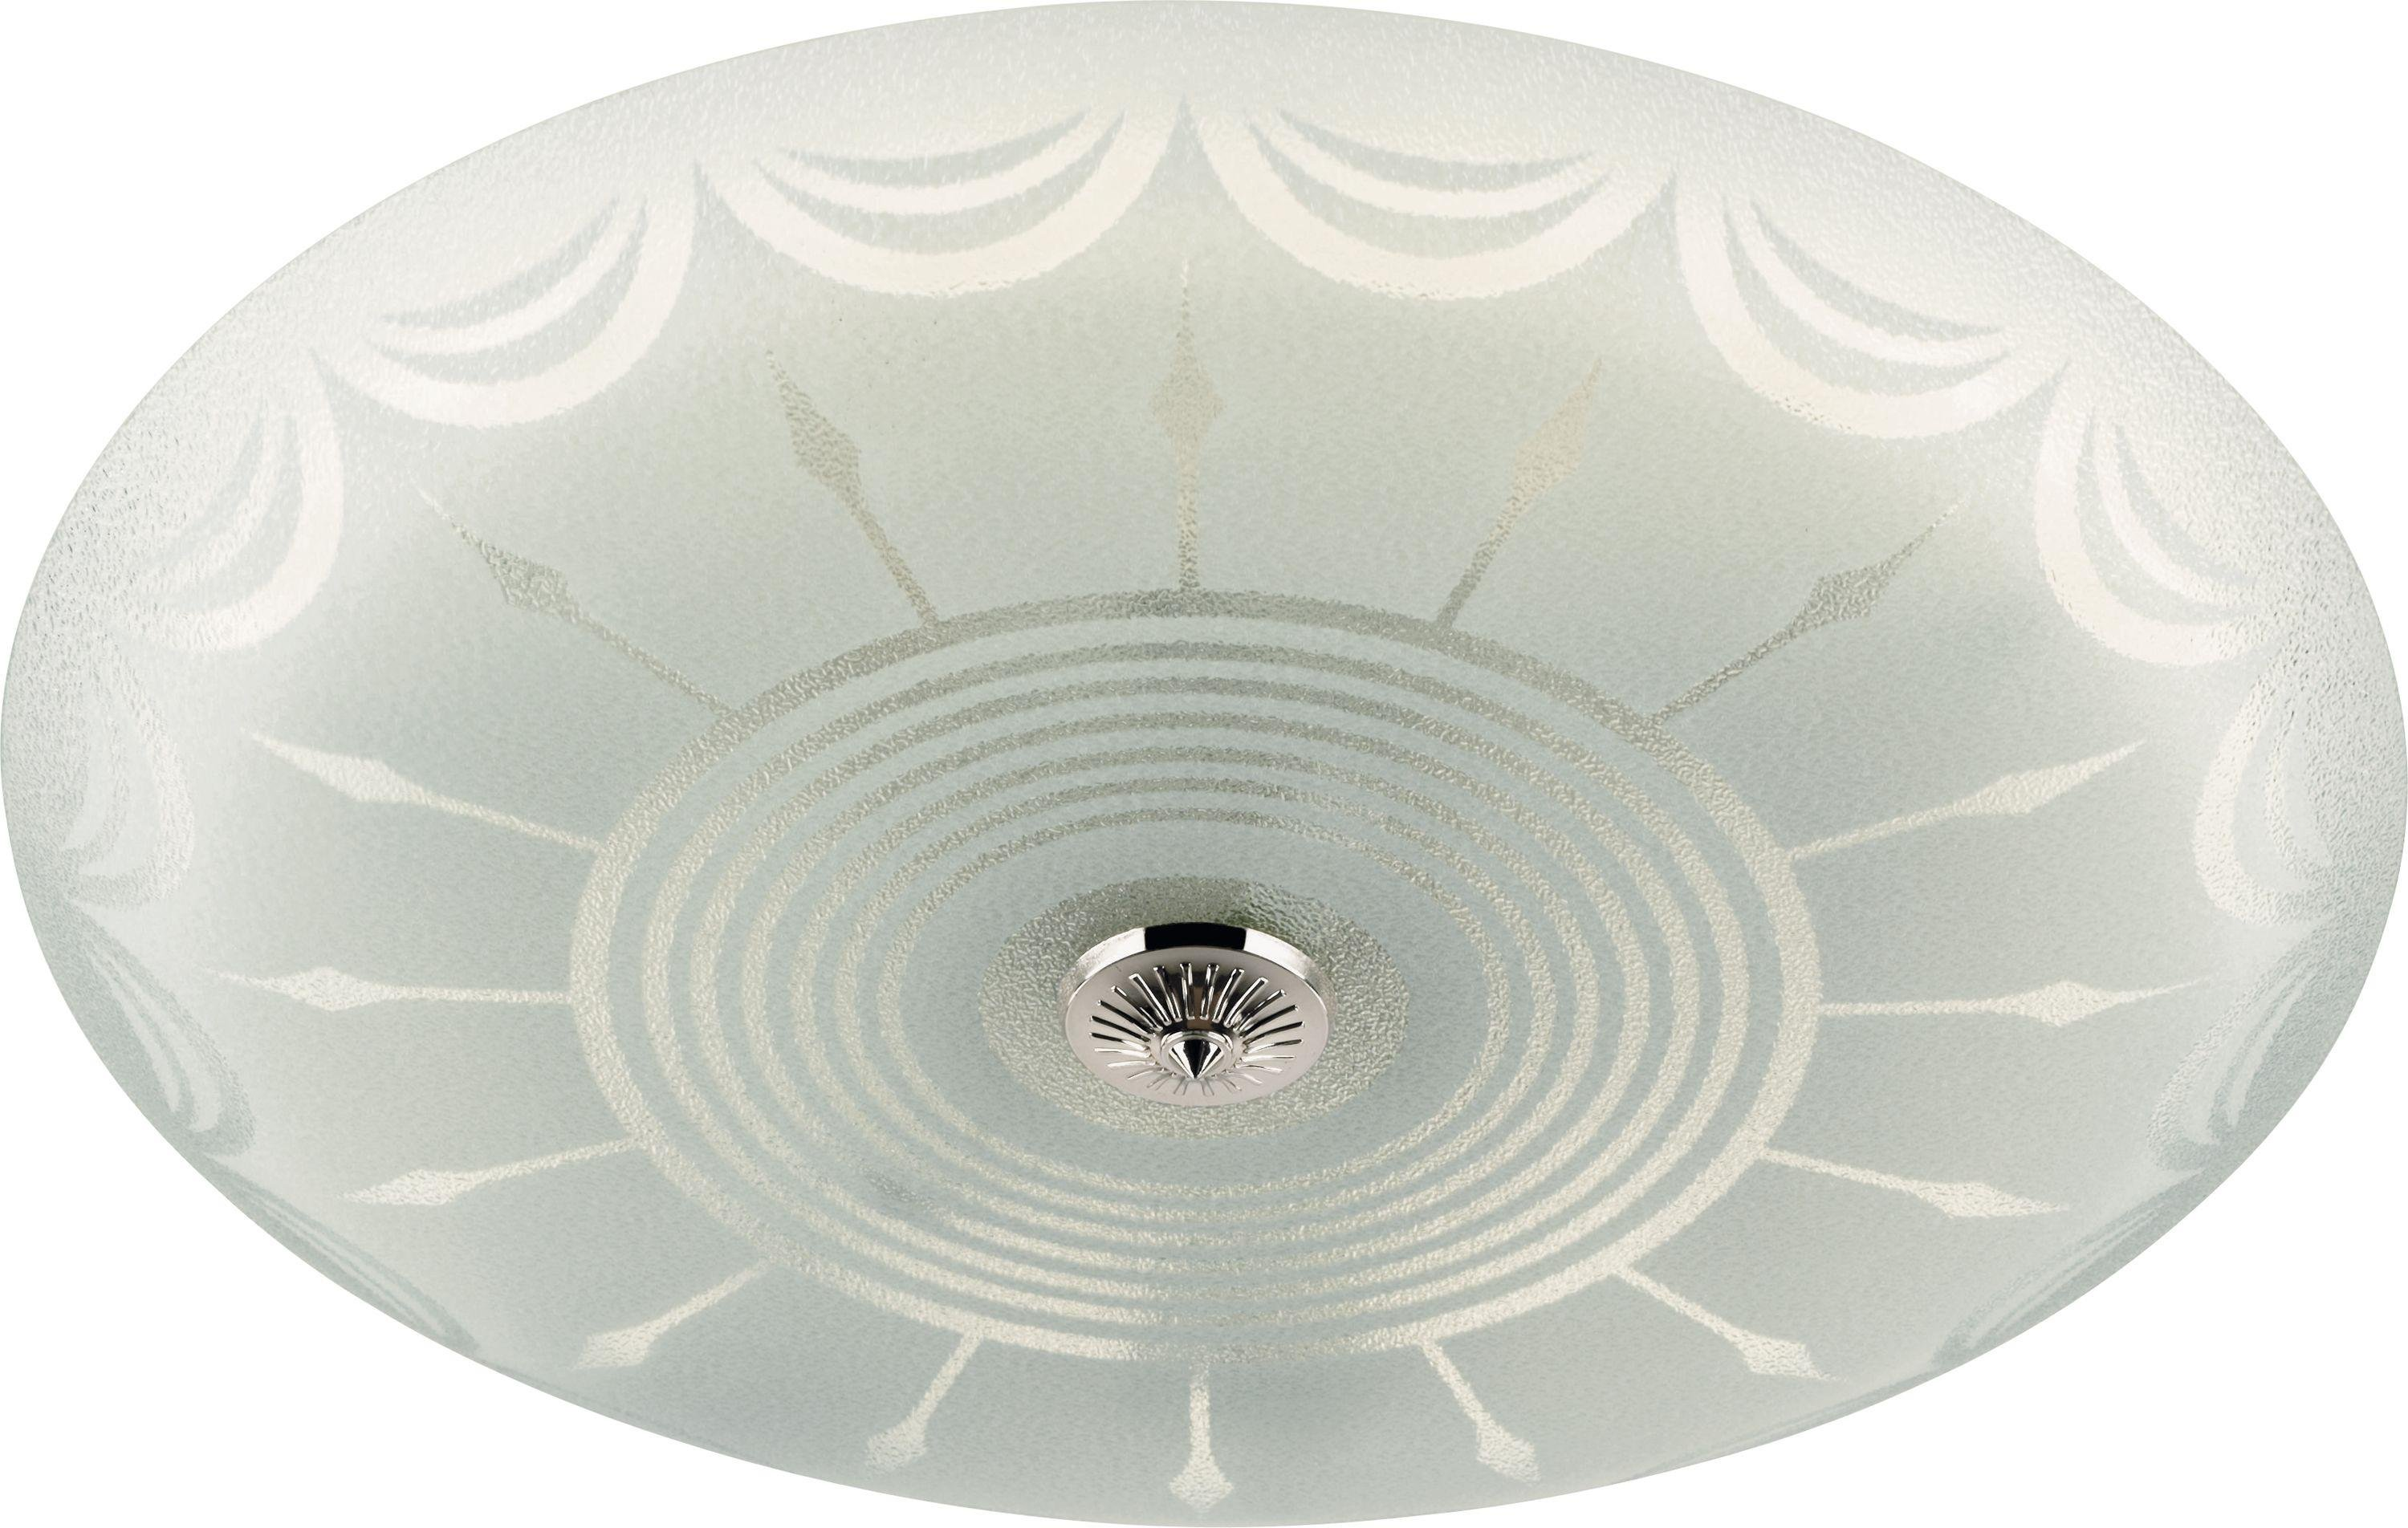 buy home circular fluorescent ceiling fitting   white at argos co uk   your online shop for ceiling and wall lights lighting home and garden  buy home circular fluorescent ceiling fitting   white at argos co      rh   argos co uk